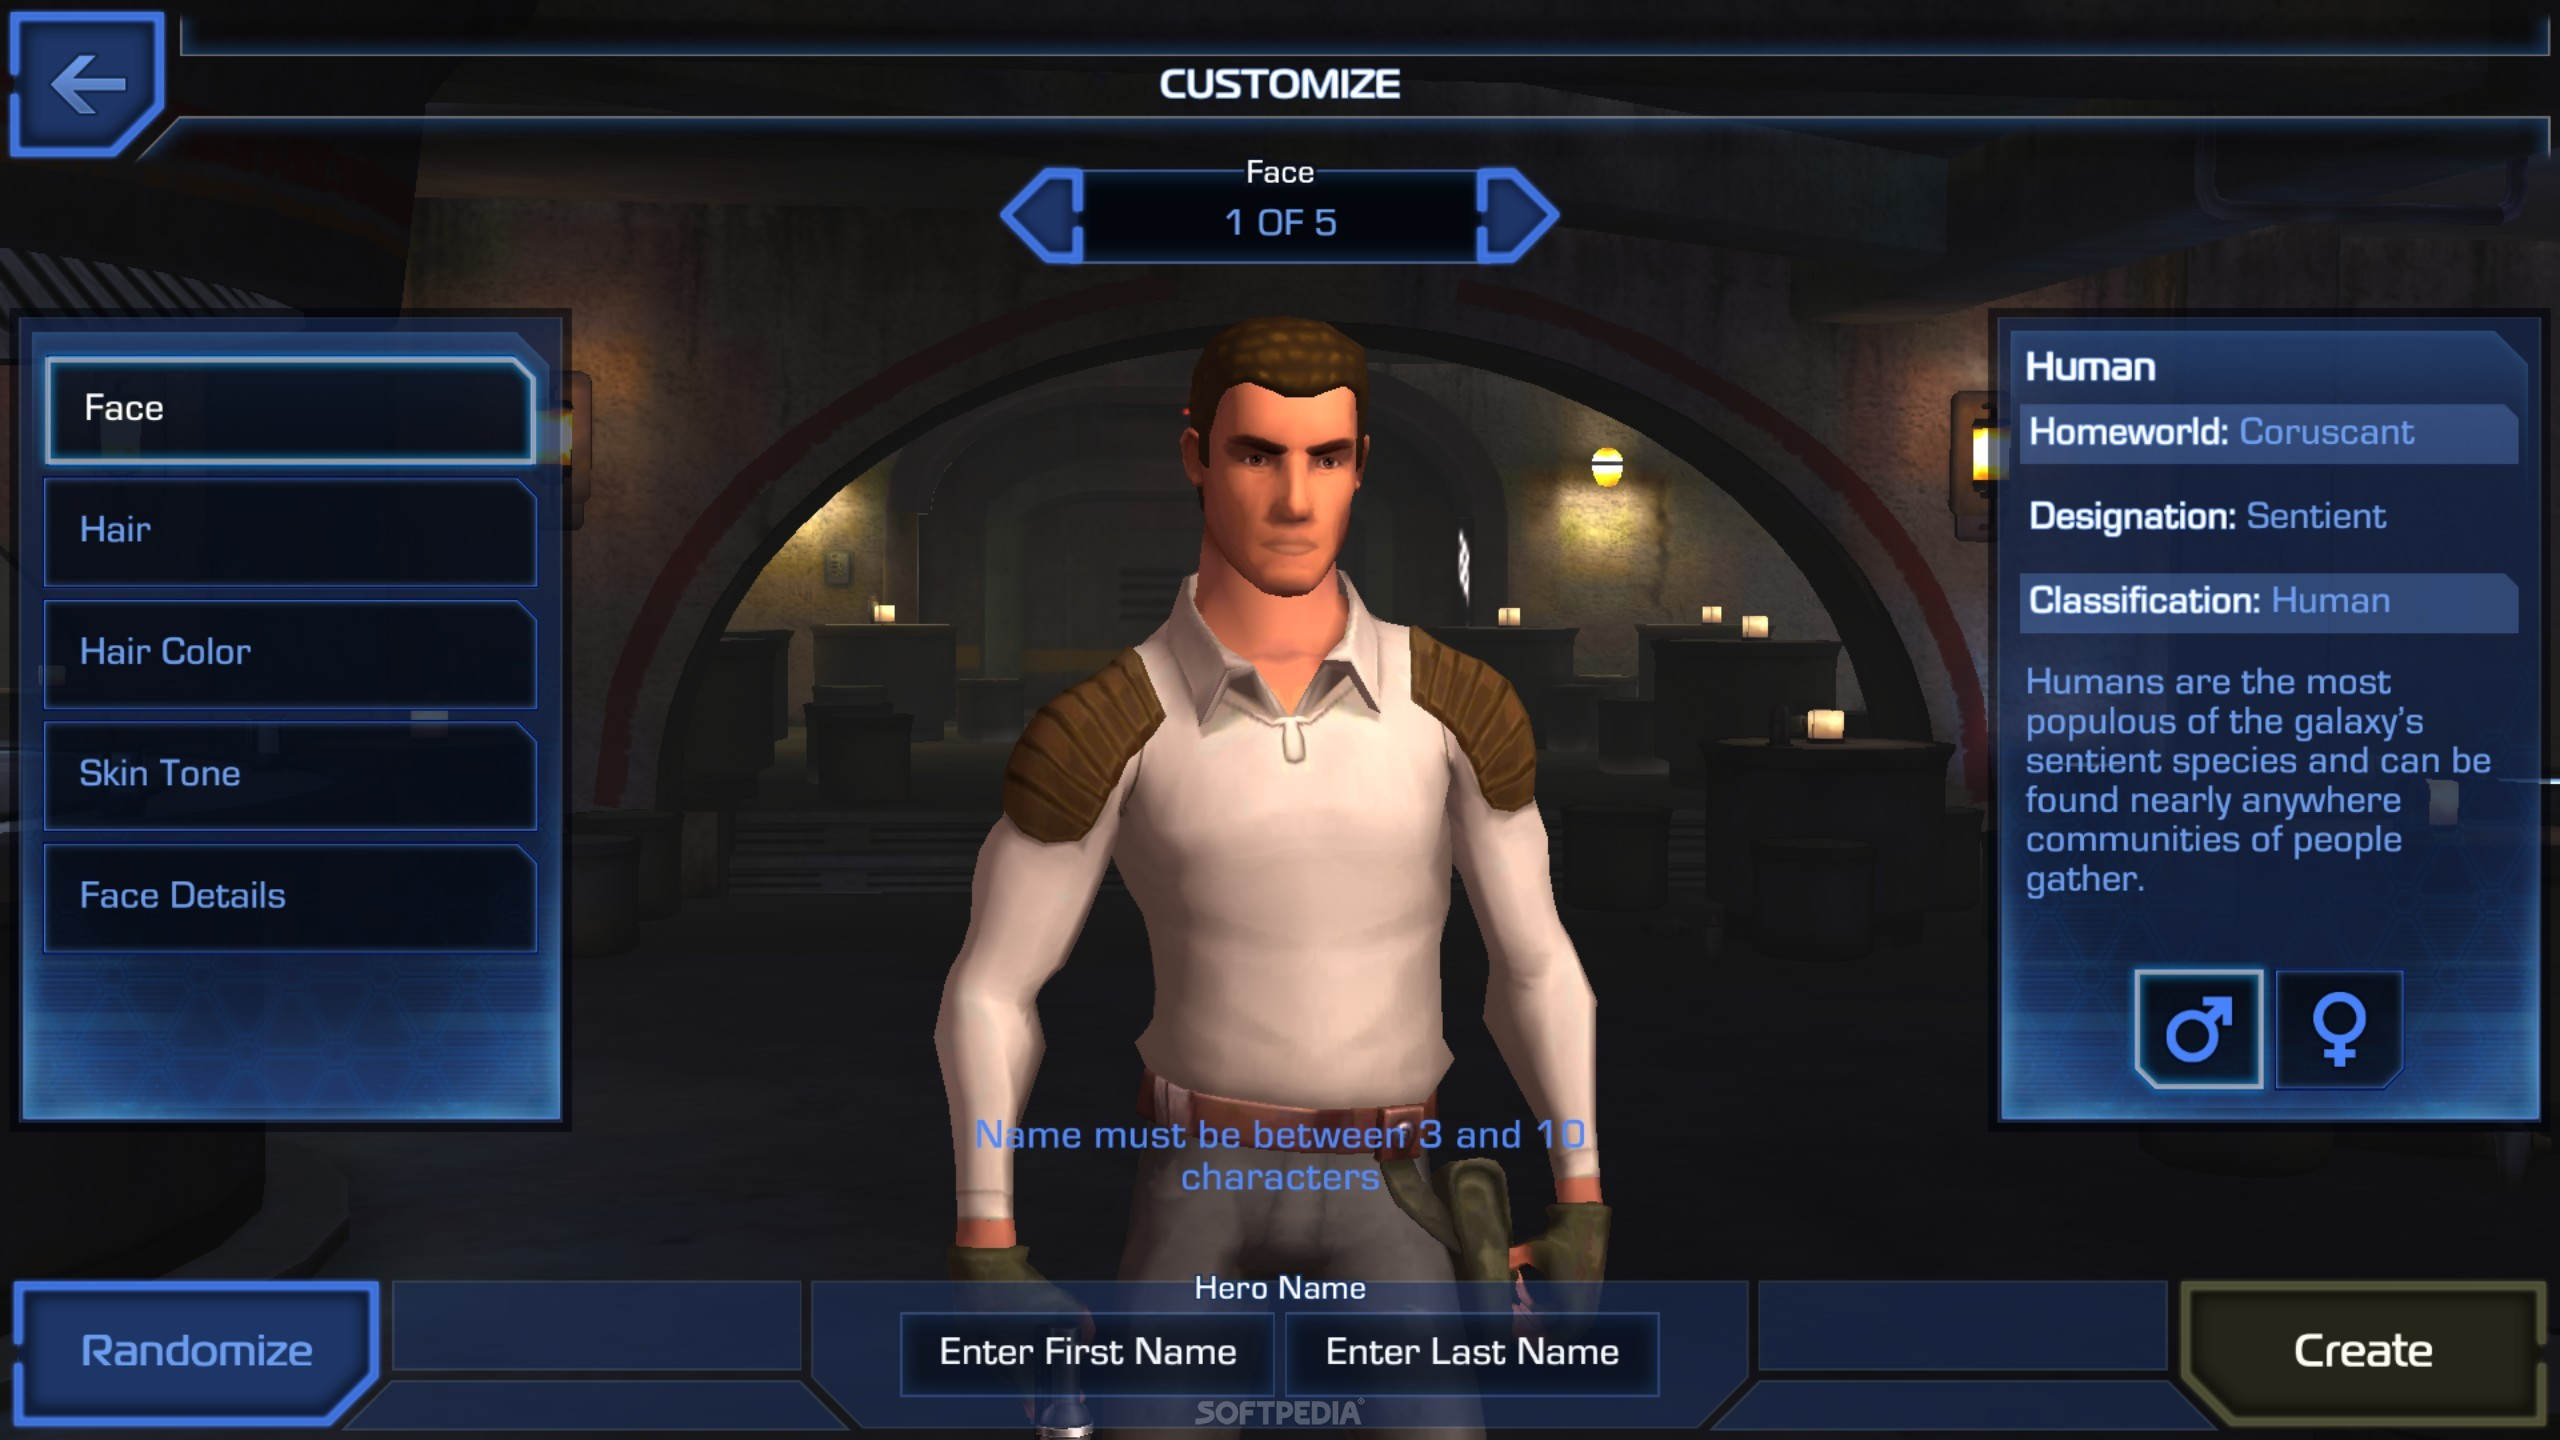 Star Wars: Uprising Release Information for Android - GameFAQs